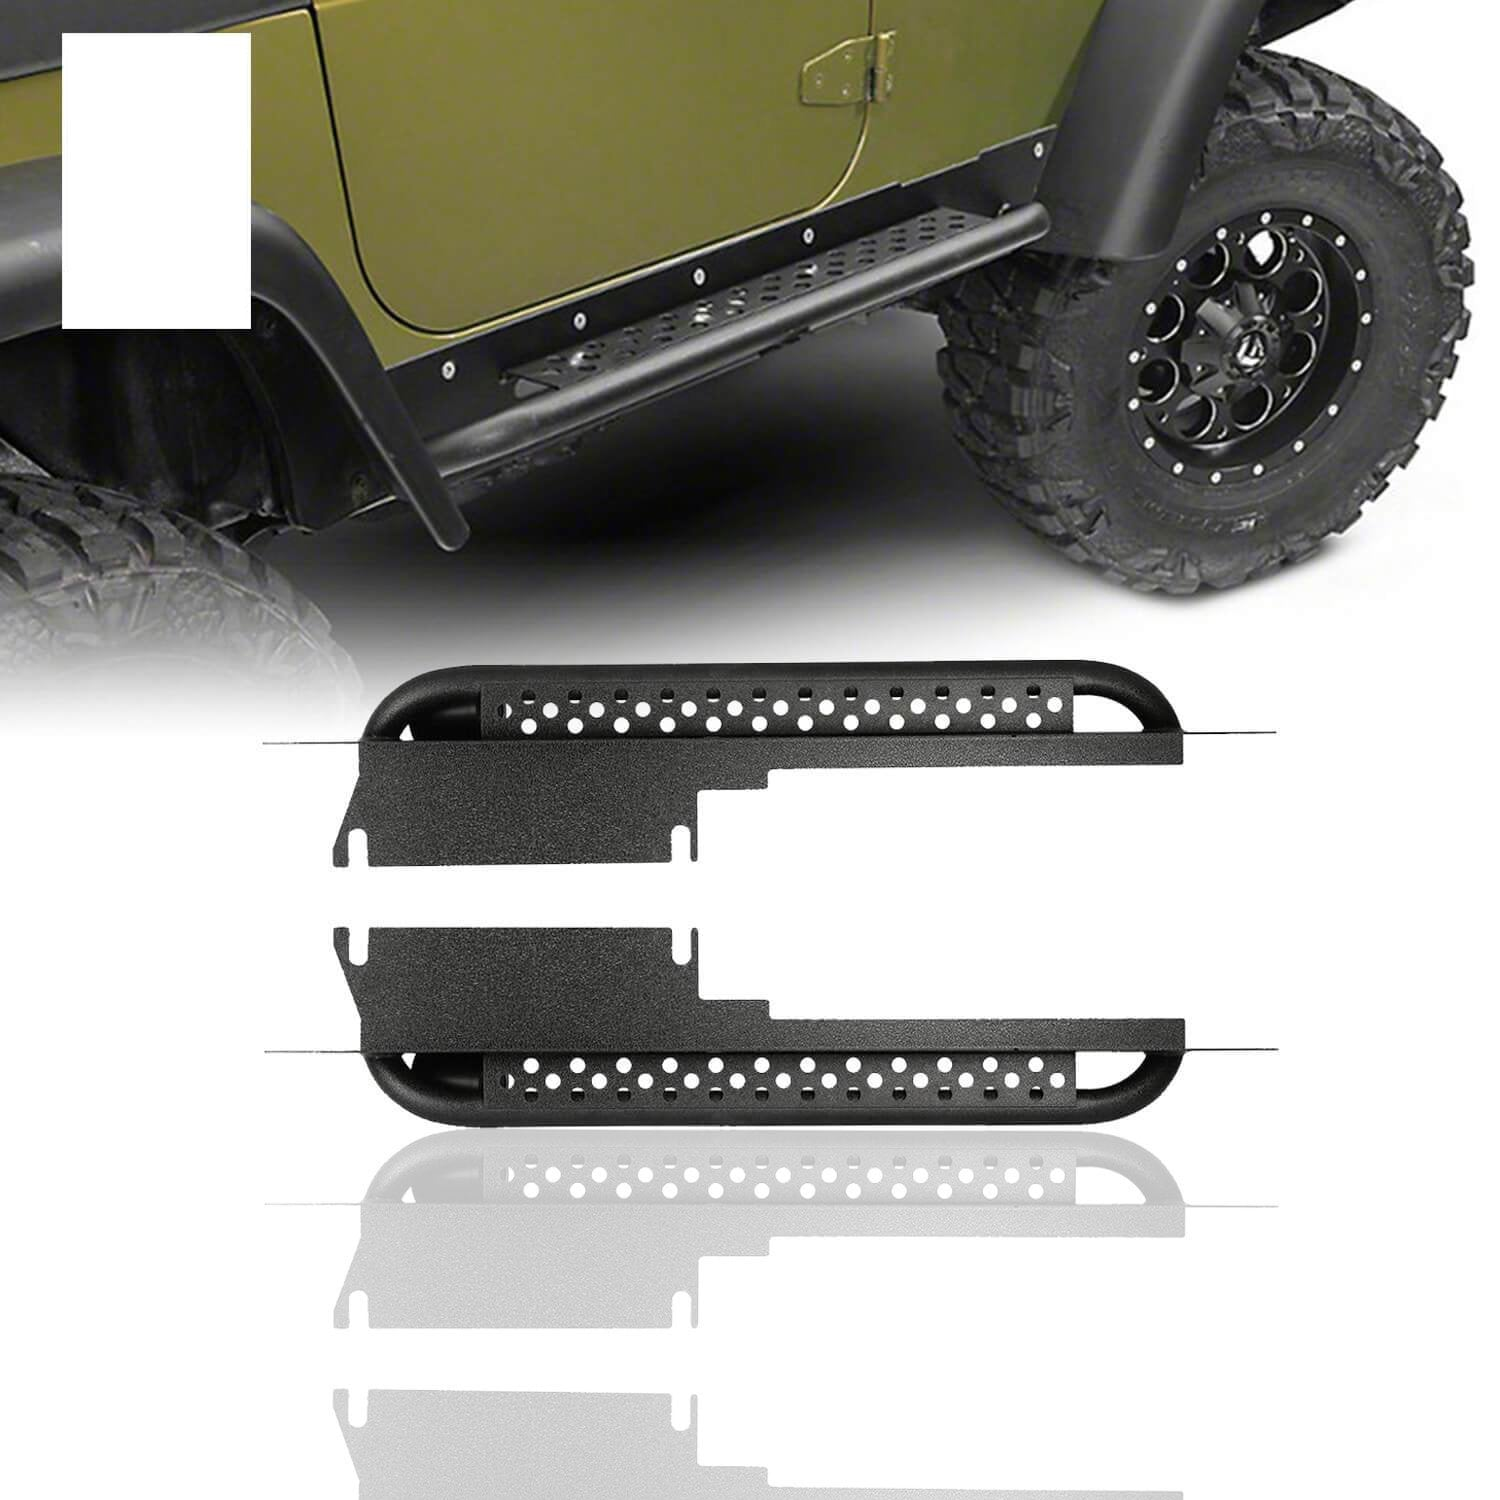 97-06 Jeep Wrangler TJ & Unlimited side steps